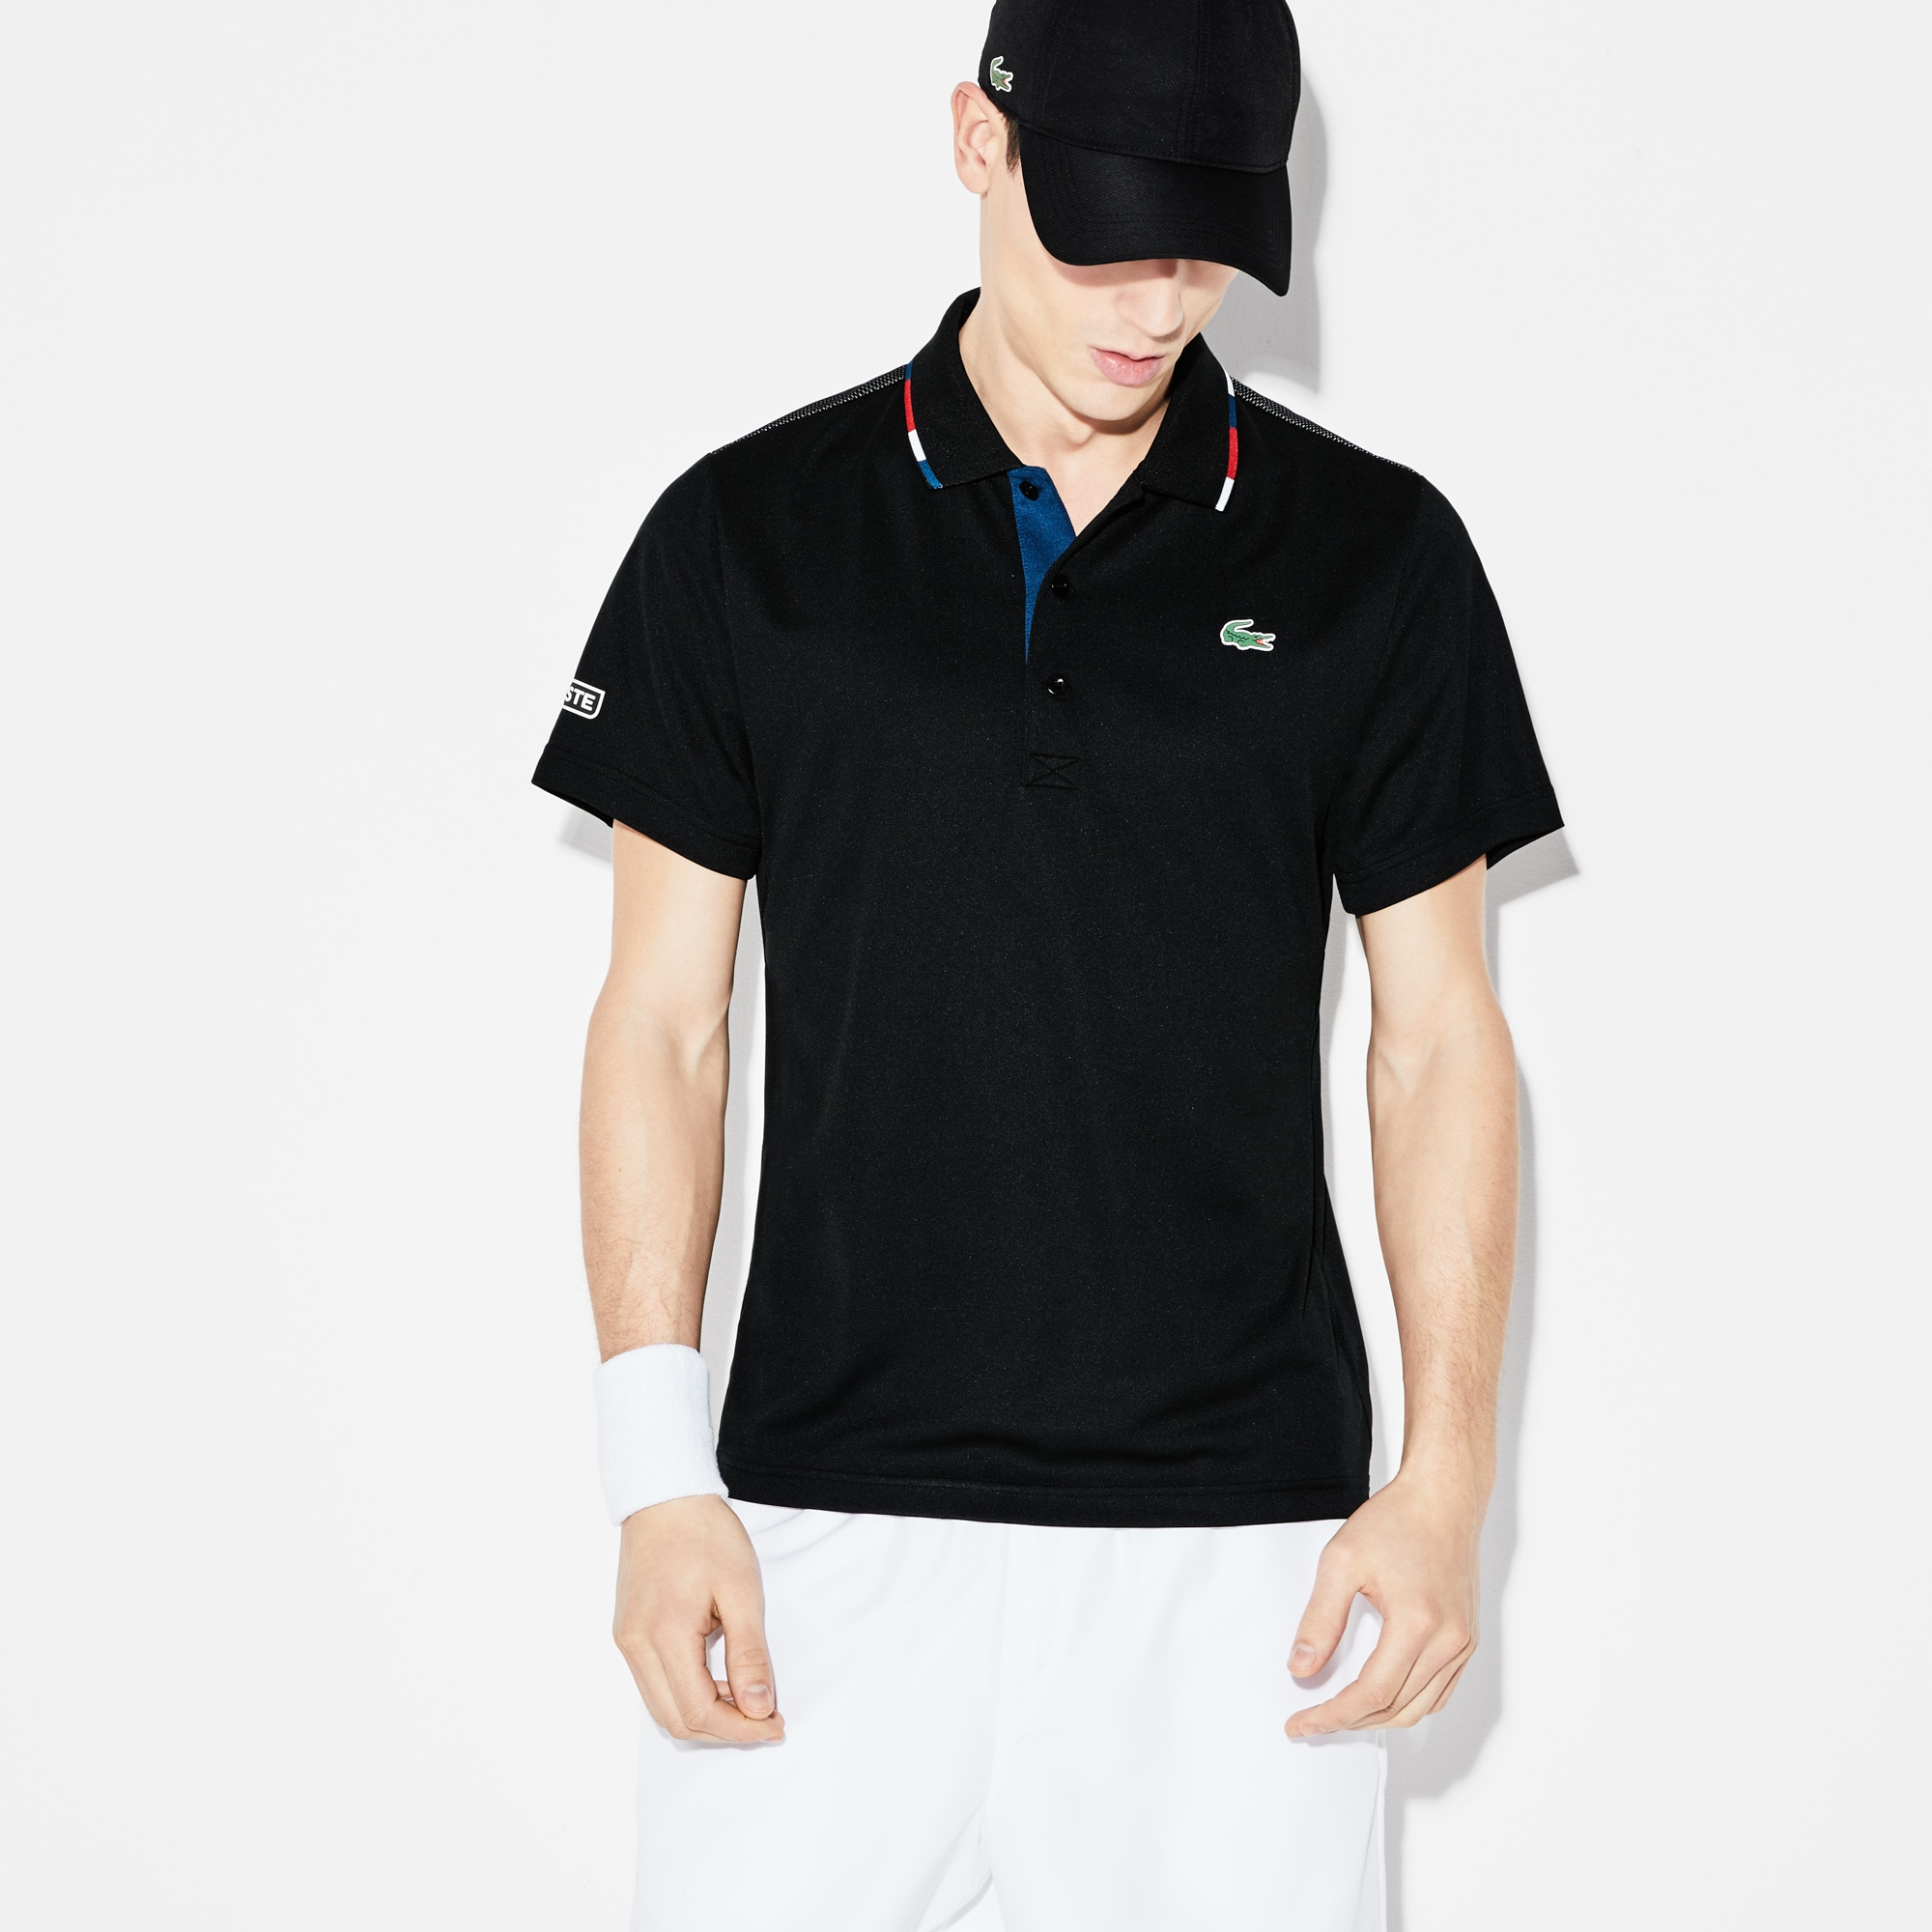 Men's SPORT Piped Technical Piqué Tennis Polo